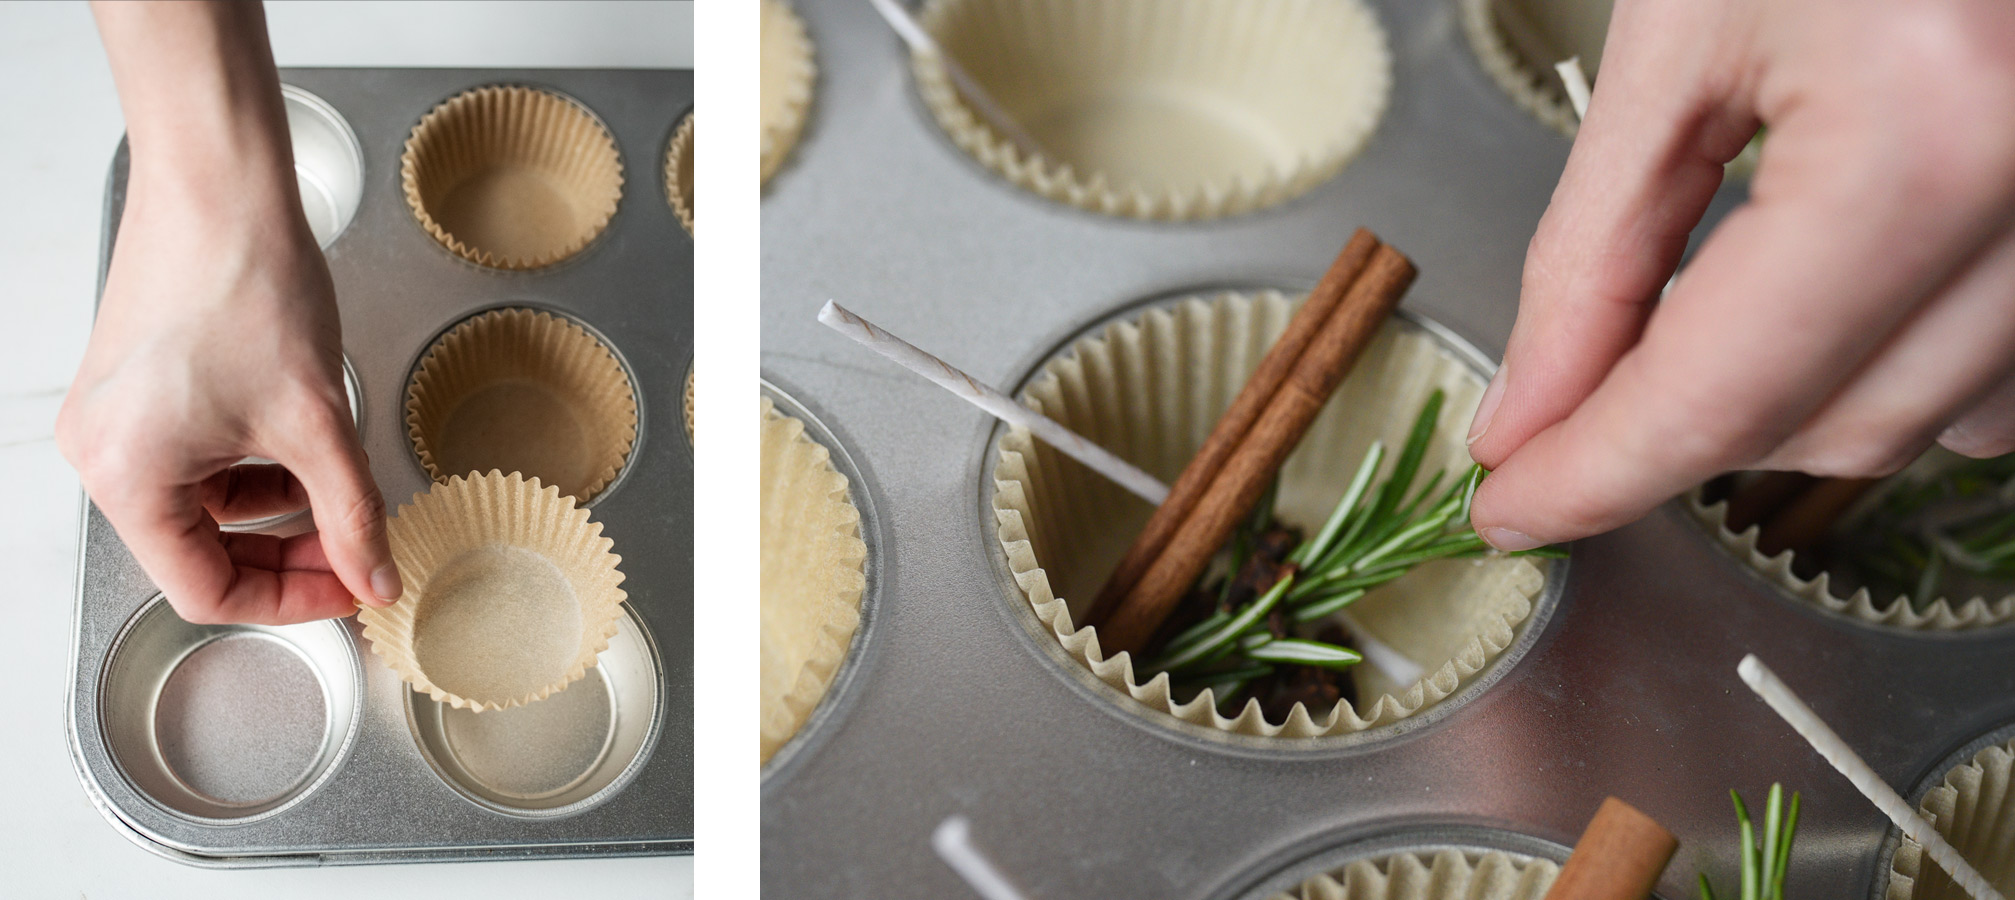 Placing muffin wrappers into muffin tin.